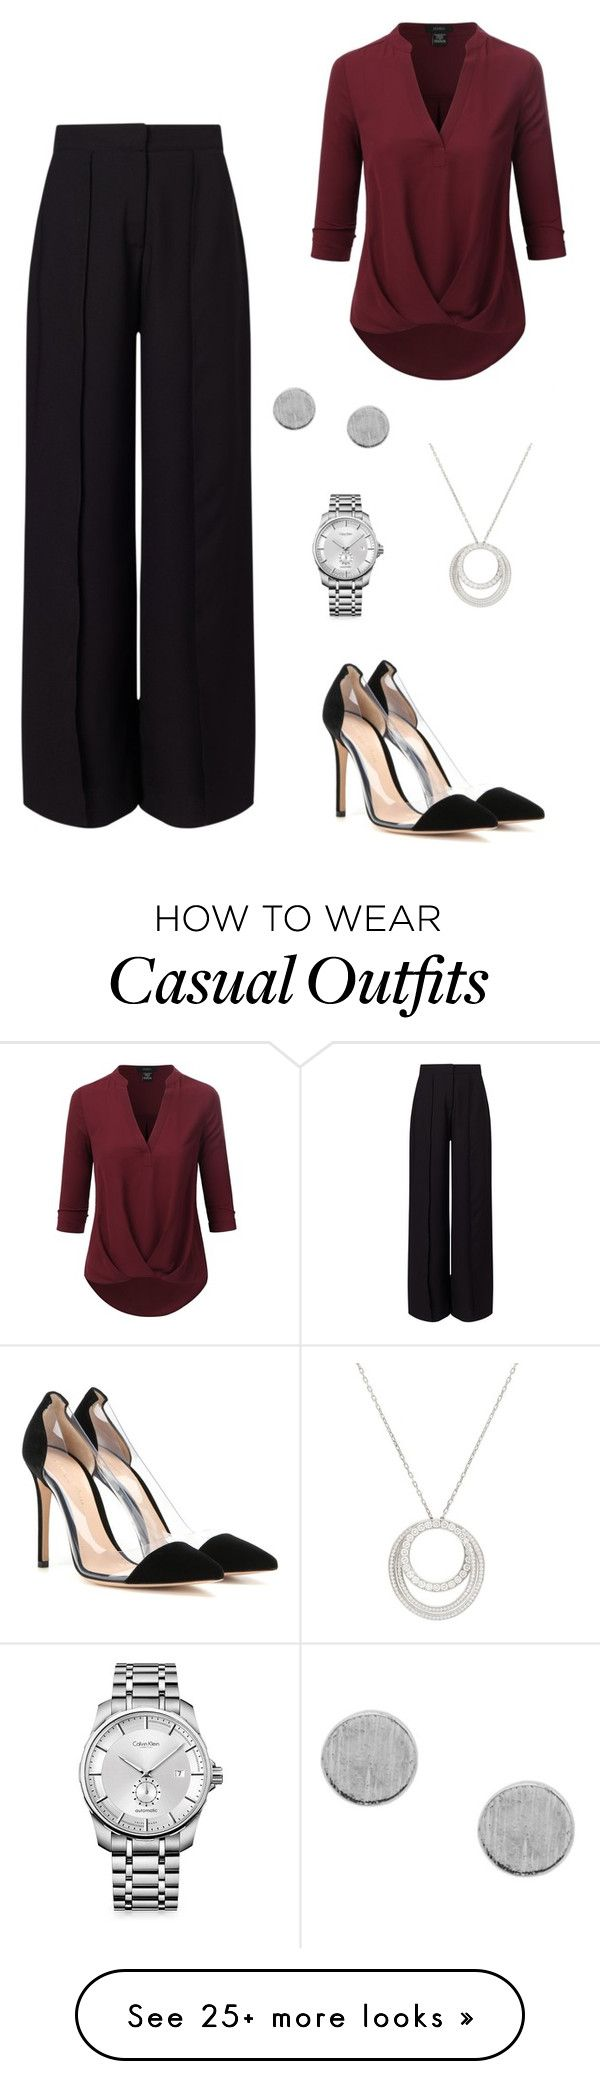 """""""Casual Dinner"""" by laurenhansendenatly on Polyvore featuring Miss Selfridge, Doublju, Gianvito Rossi, Cartier and Calvin Klein"""